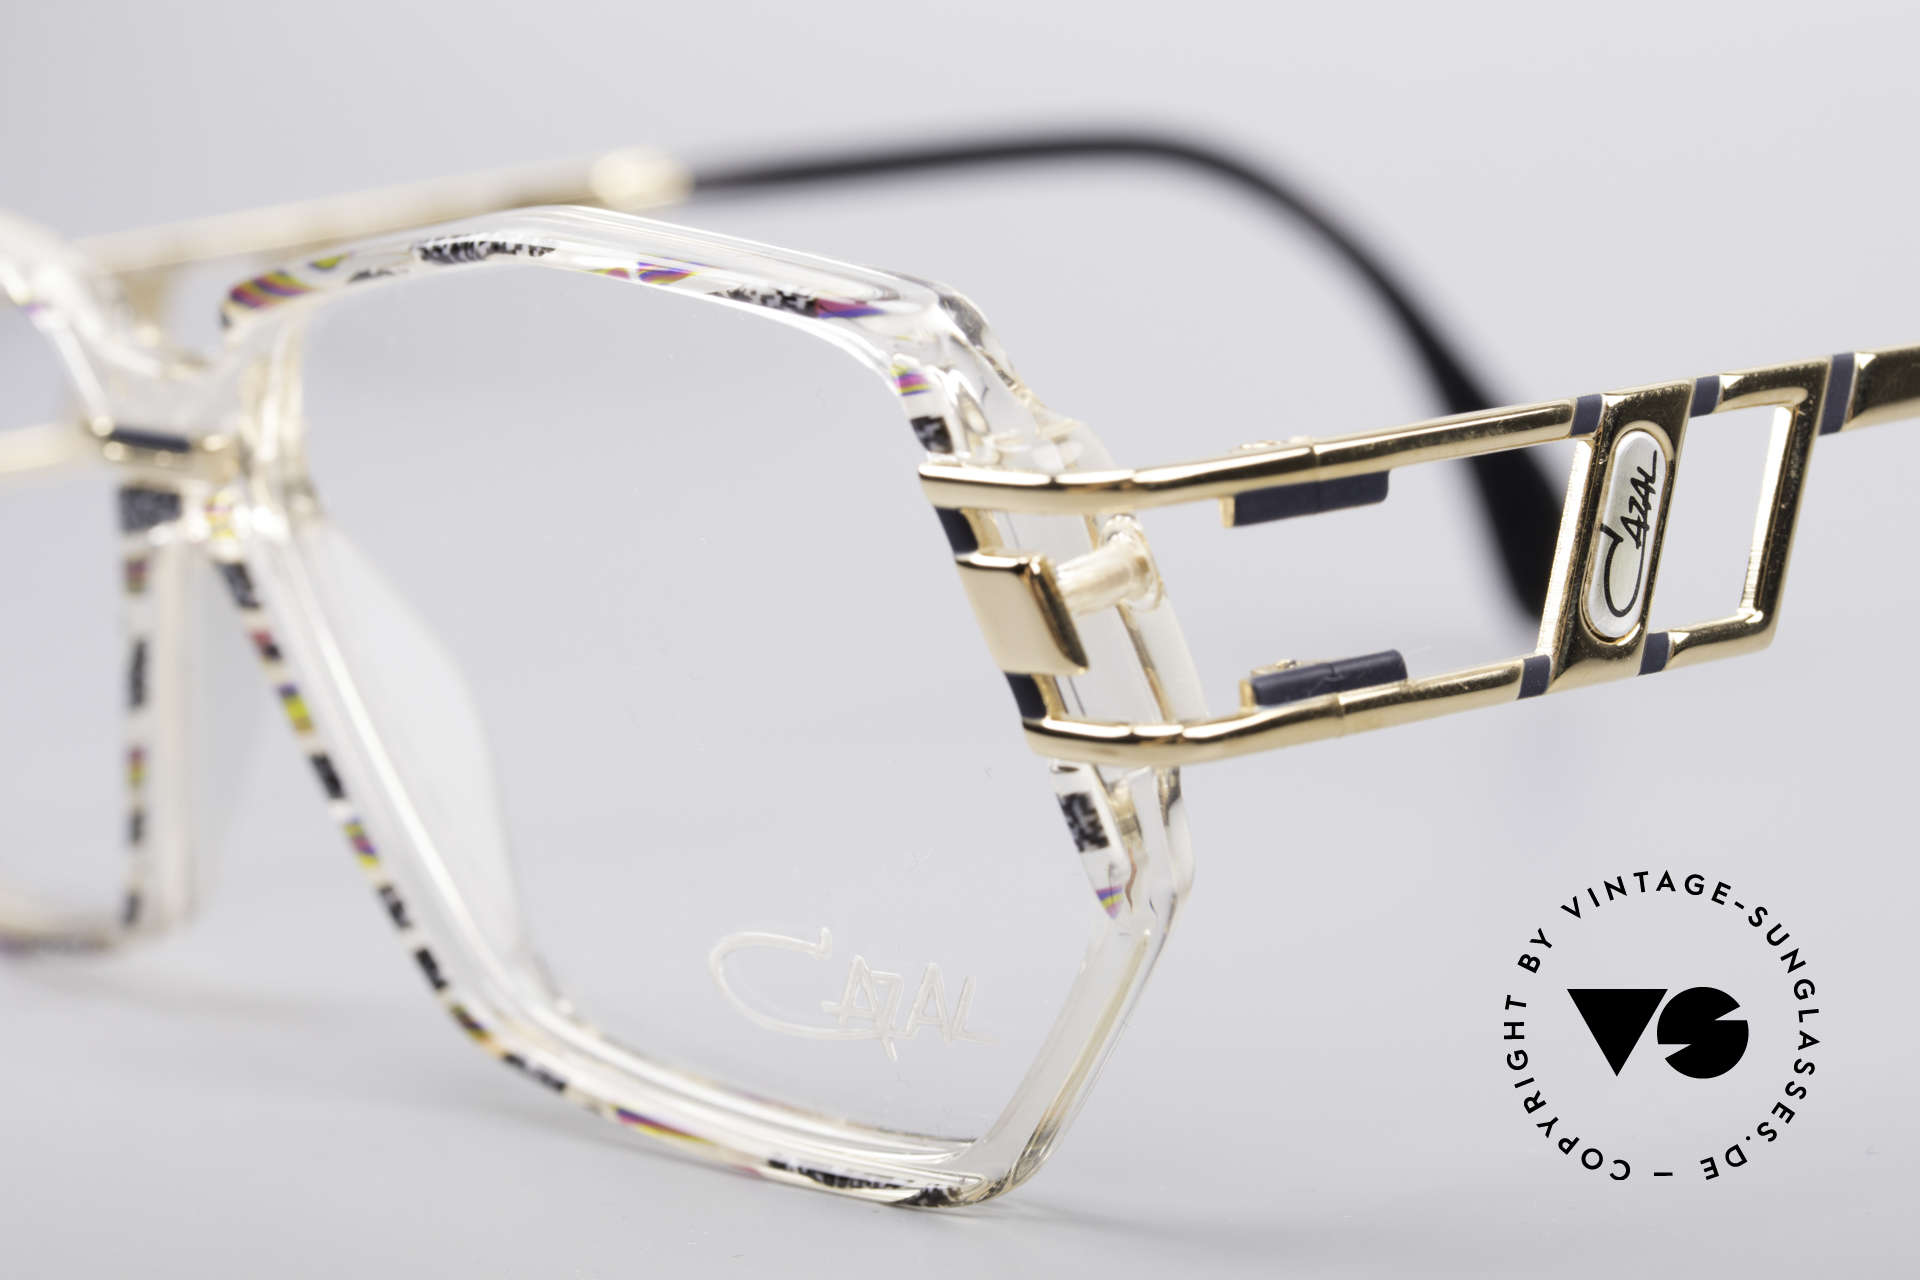 Cazal 359 90's Hip Hop Eyeglasses, unworn, NOS (like all our rare vintage CAZAL eyewear), Made for Women